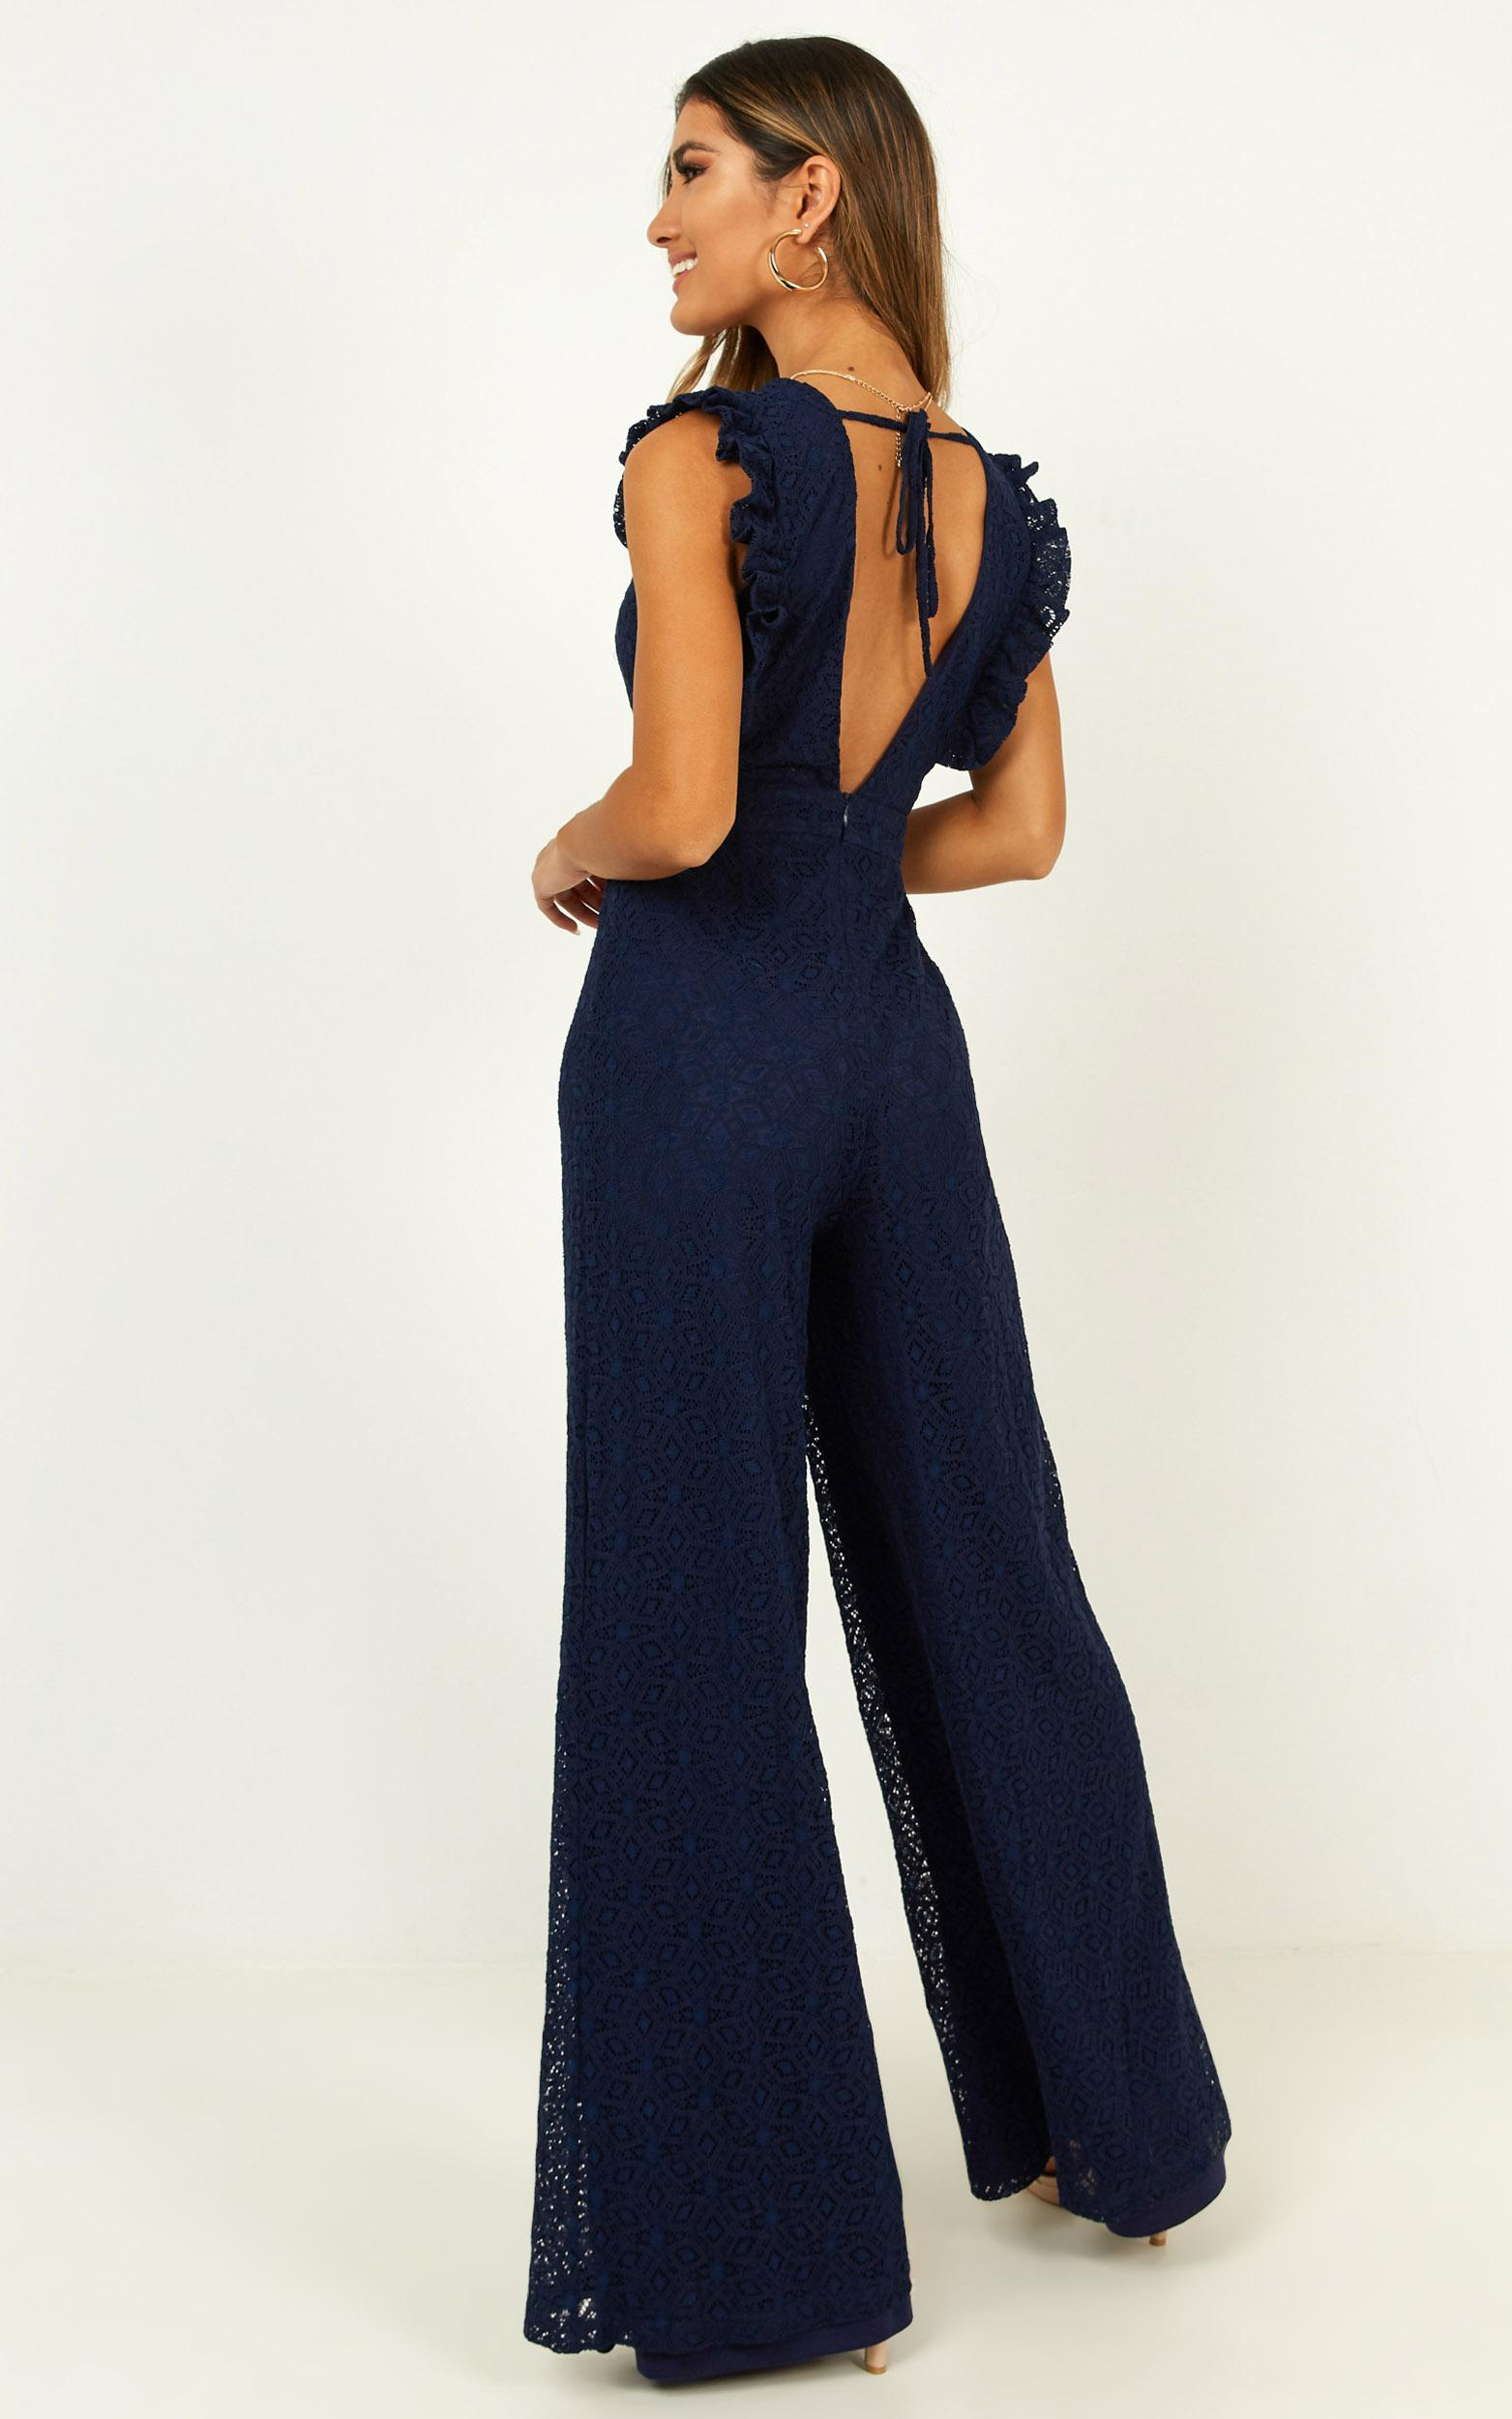 If You Wanna Jumpsuit in navy lace - 20 (XXXXL), Navy, hi-res image number null